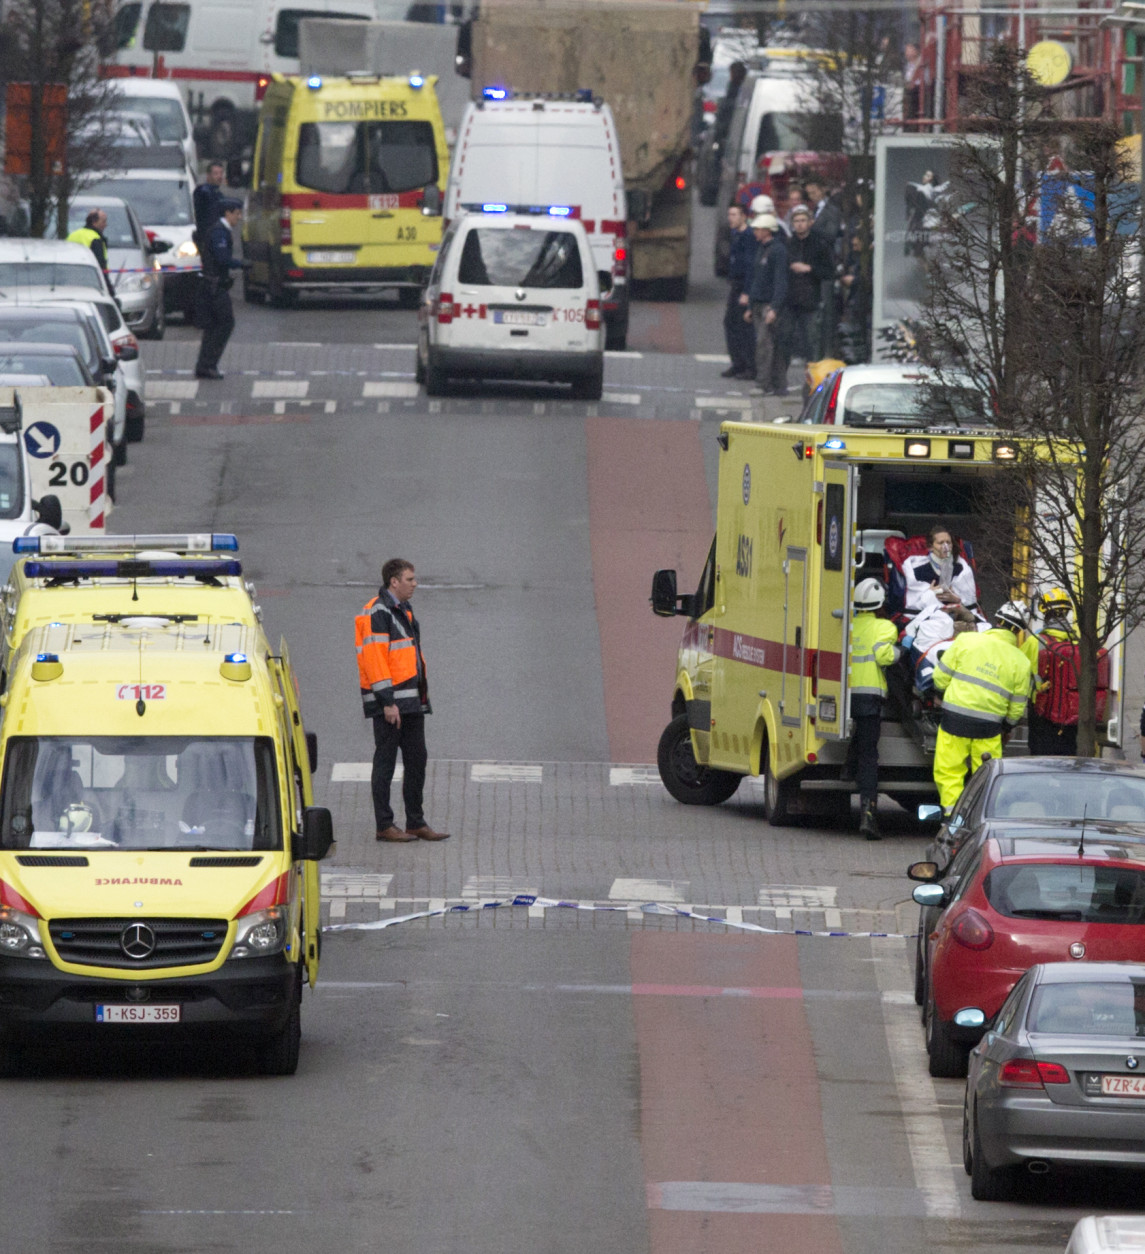 A woman is evacuated in an ambulance by emergency services after a explosion in a main metro station in Brussels on Tuesday, March 22, 2016. Explosions rocked the Brussels airport and the subway system Tuesday, killing at least 13 people and injuring many others just days after the main suspect in the November Paris attacks was arrested in the city, police said. (AP Photo/Virginia Mayo)